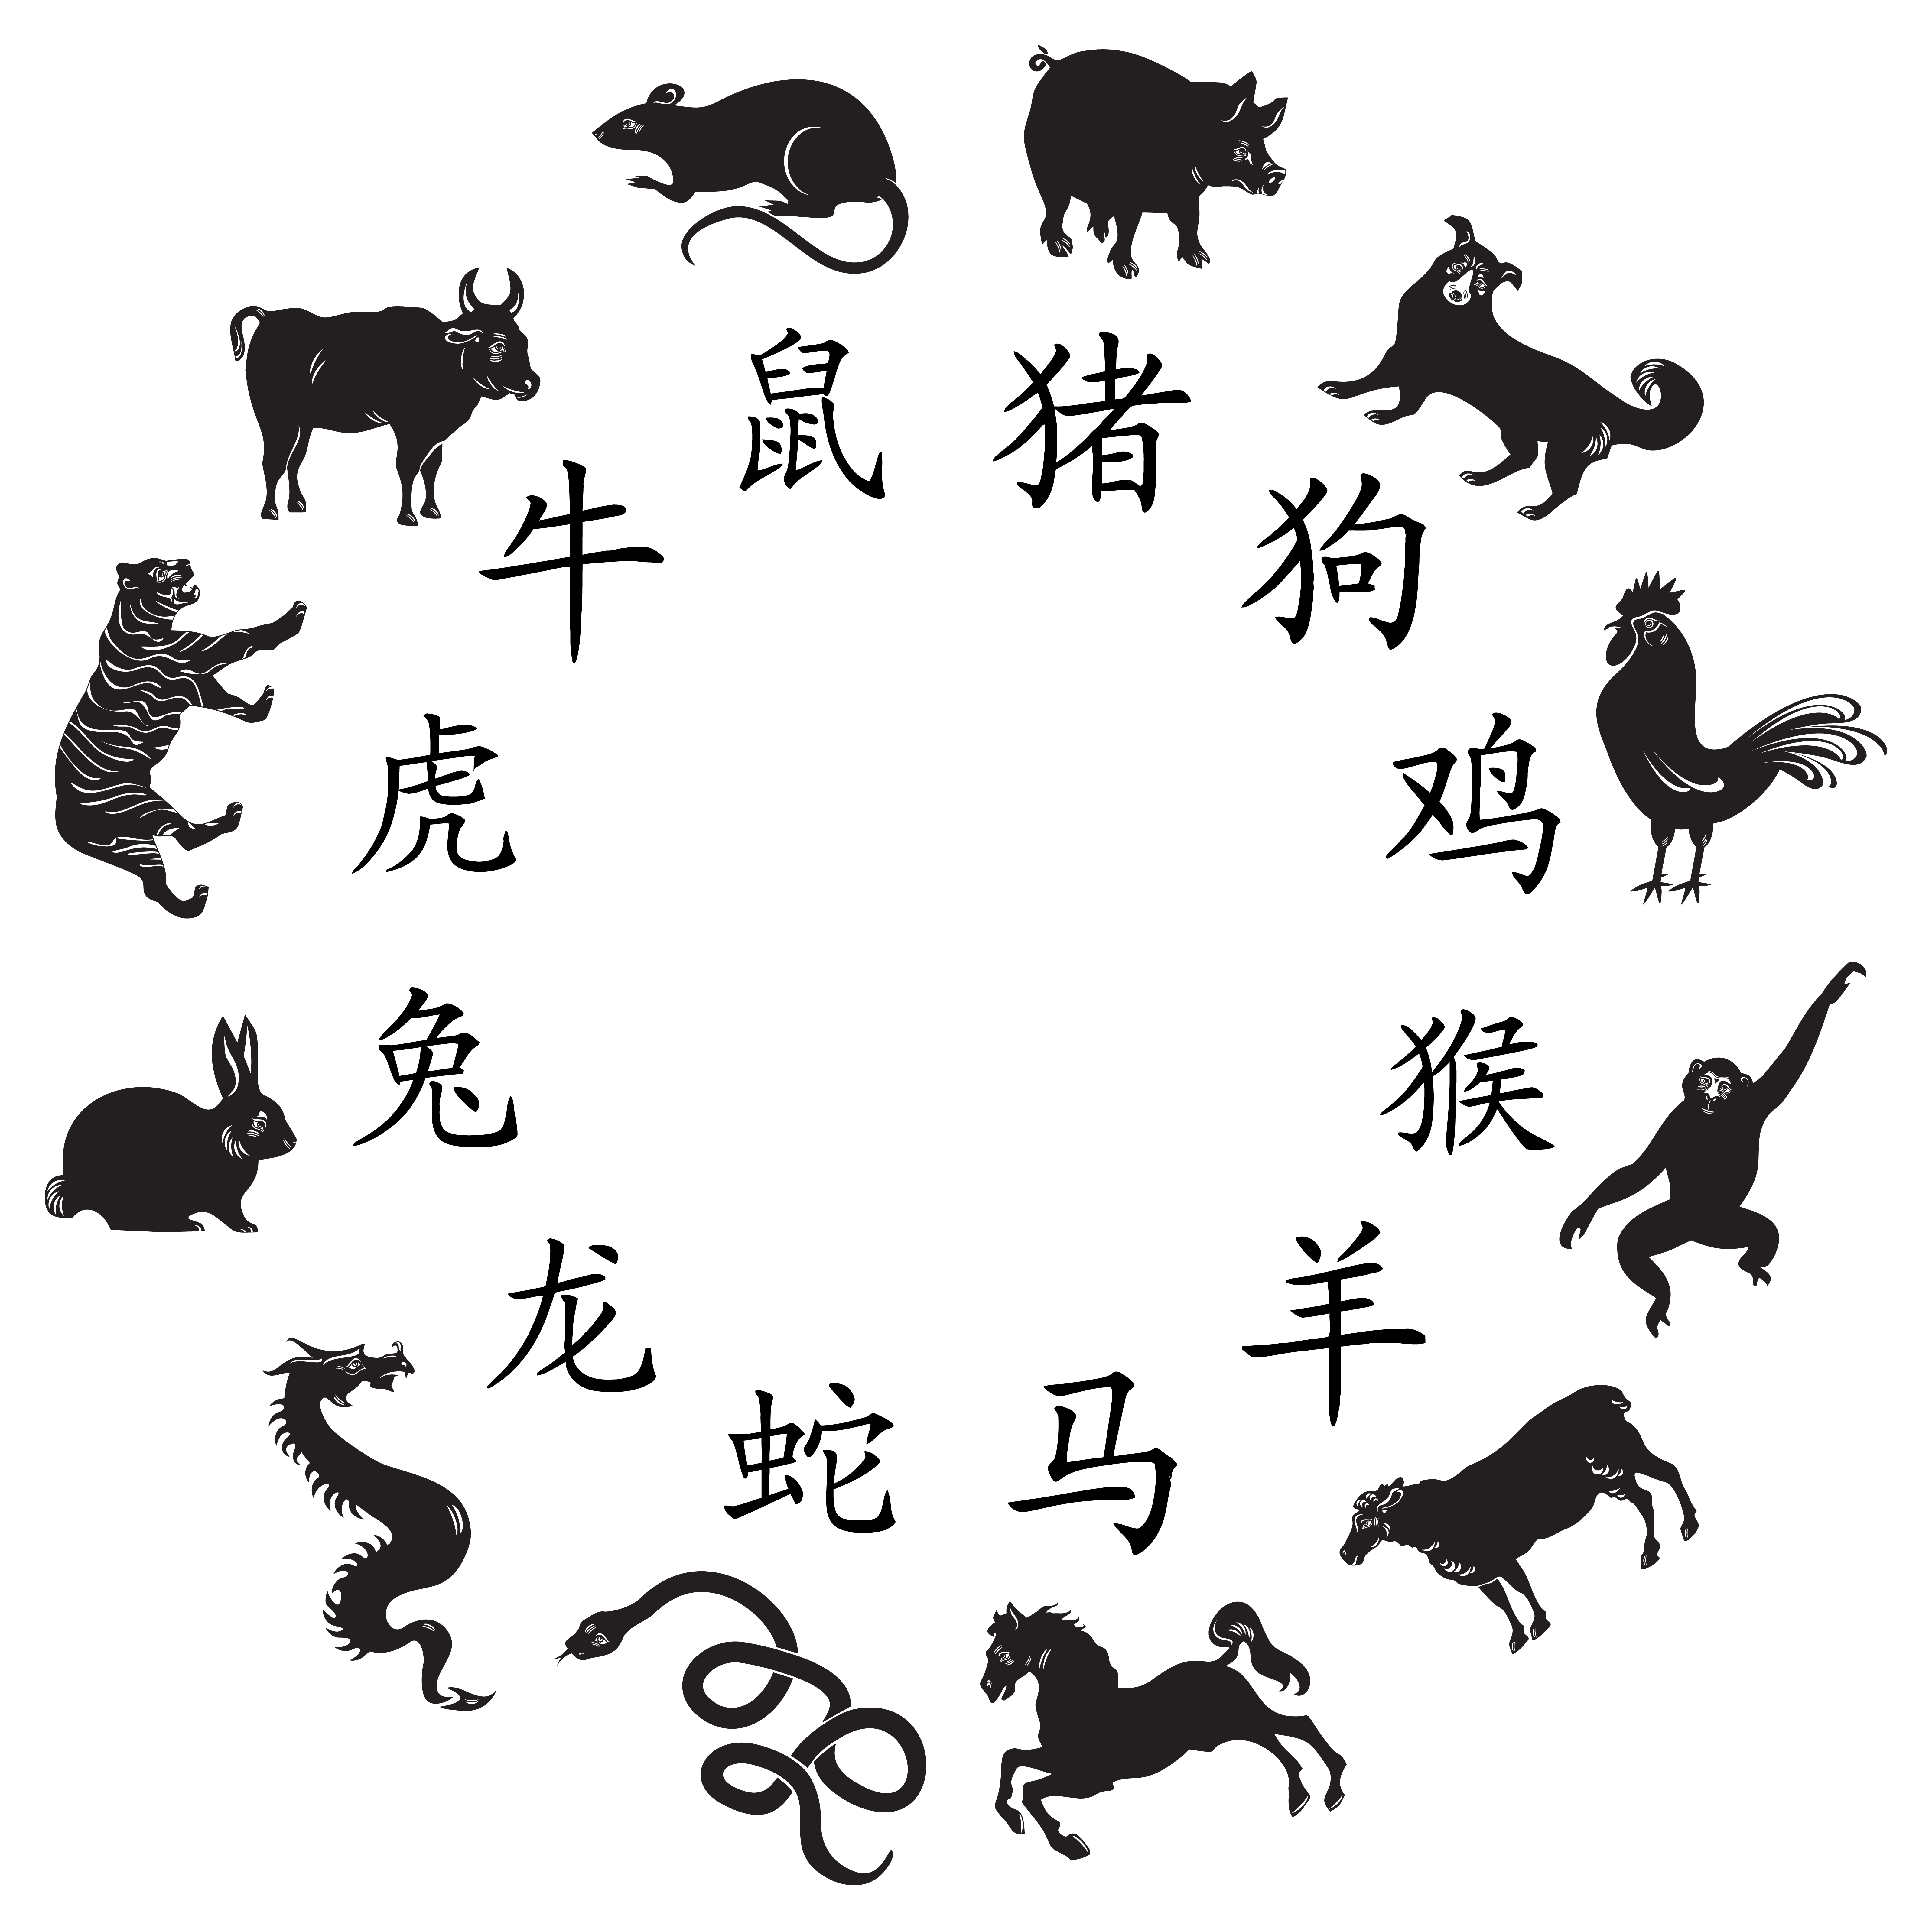 Transparent zodiac png image. Chinese clipart animal chinese jpg royalty free